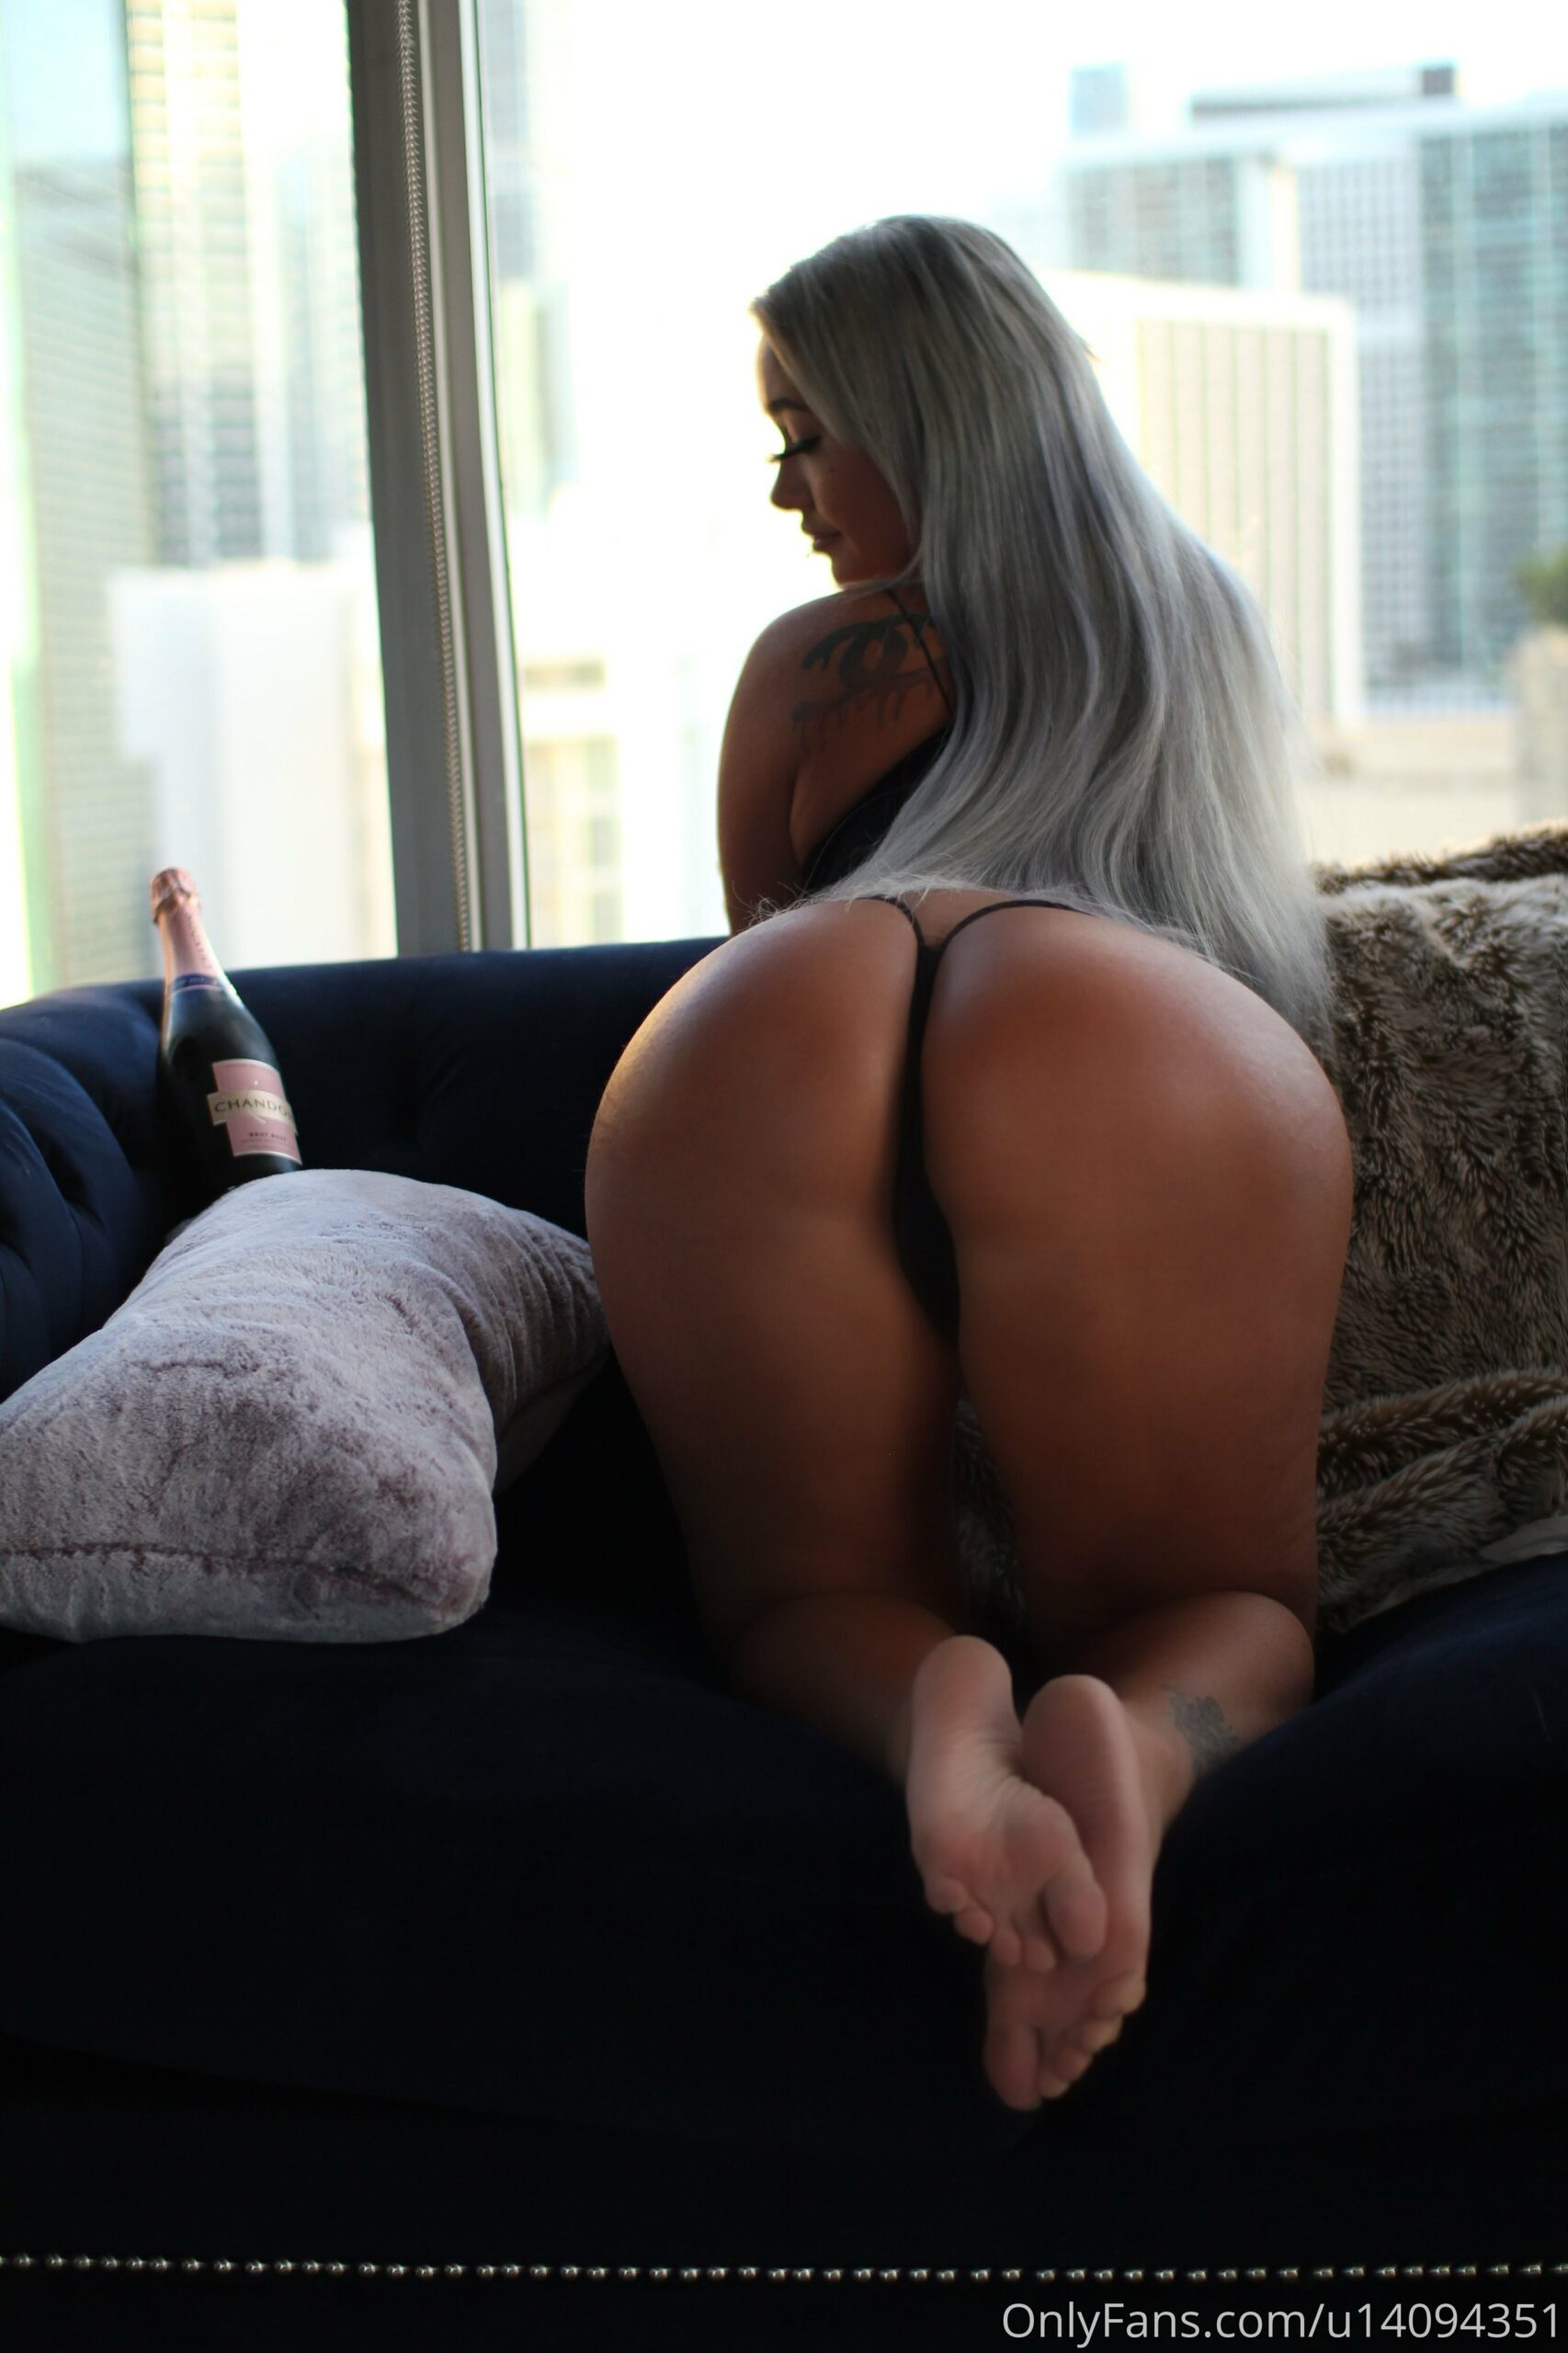 Russian Cream Porn OnlyFans Leaked Nudes 52